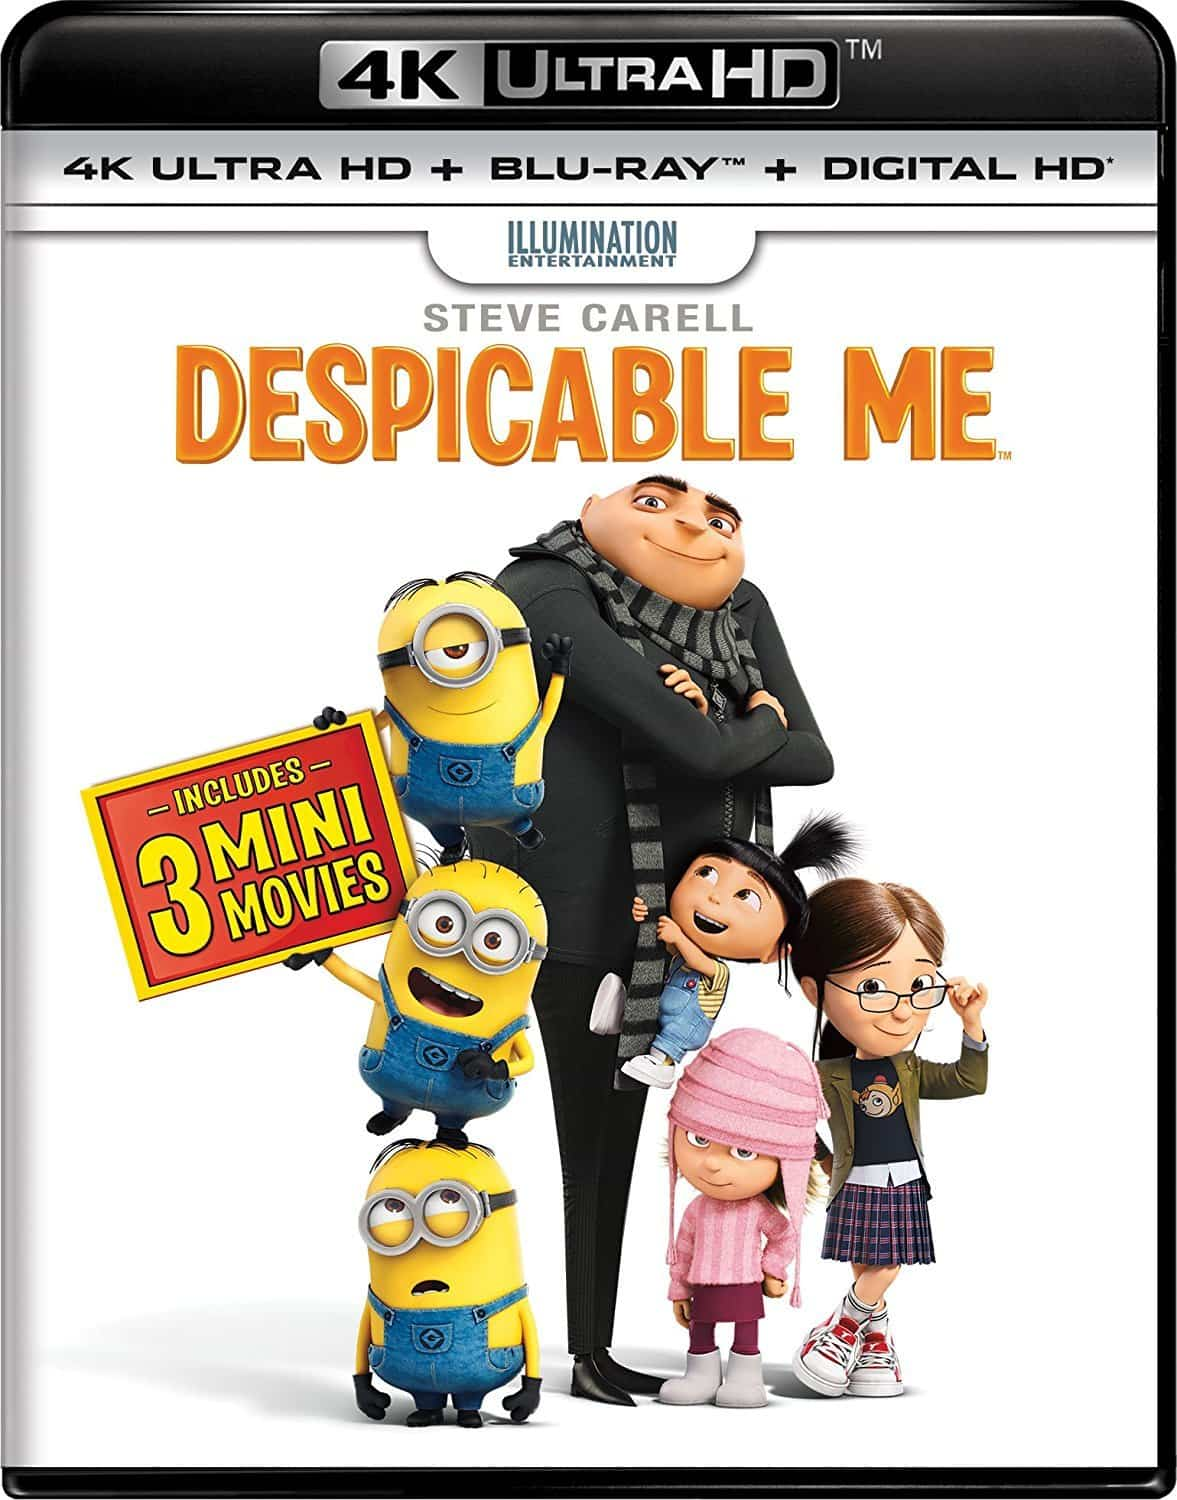 Despicable Me 2010 Ultra HDR